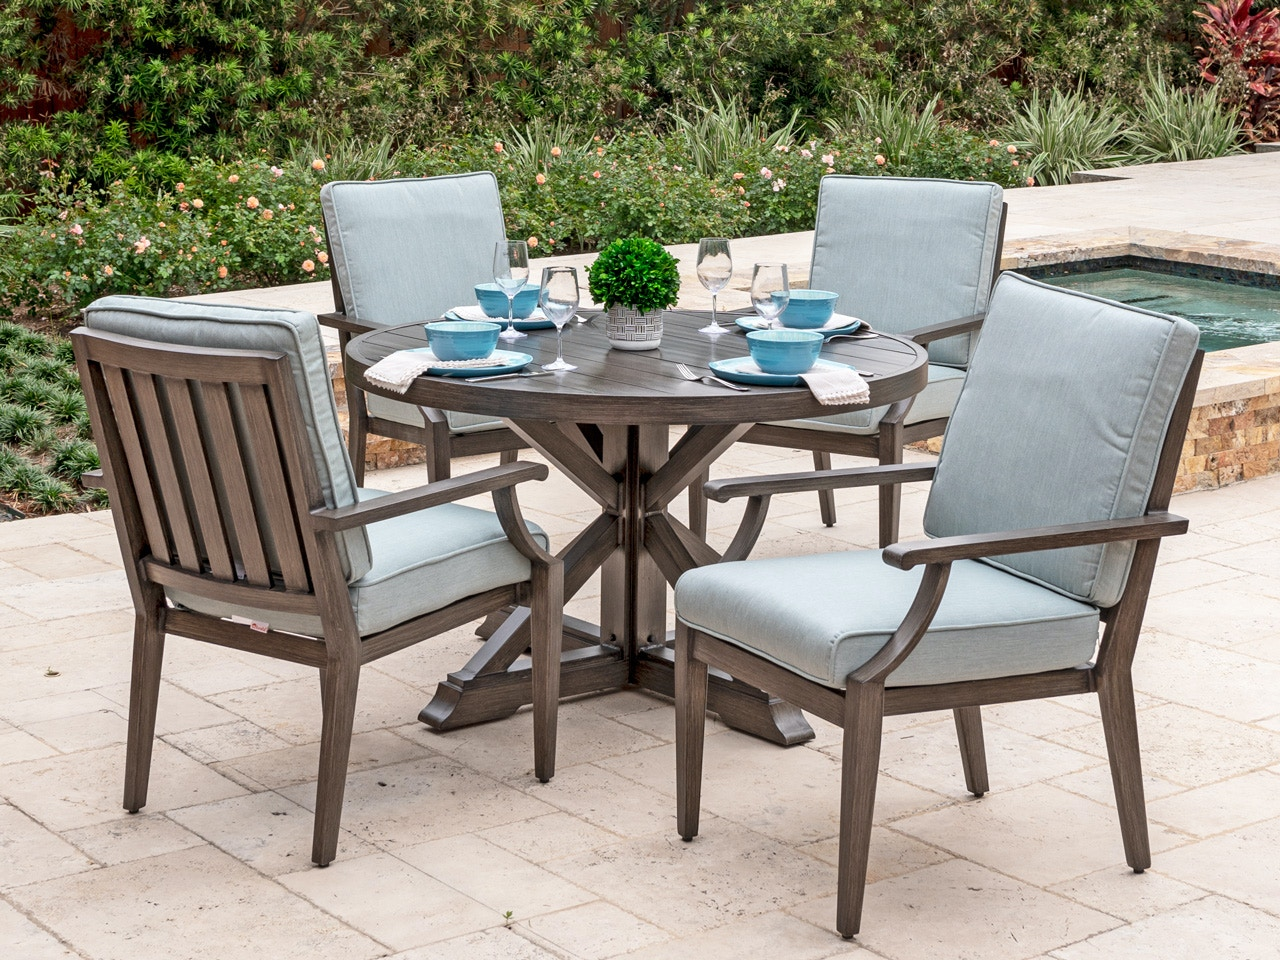 Living Room Monaco Weathered Teak Aluminum And Cast Mist Cushion 5 Pc Dining Set With 48 In